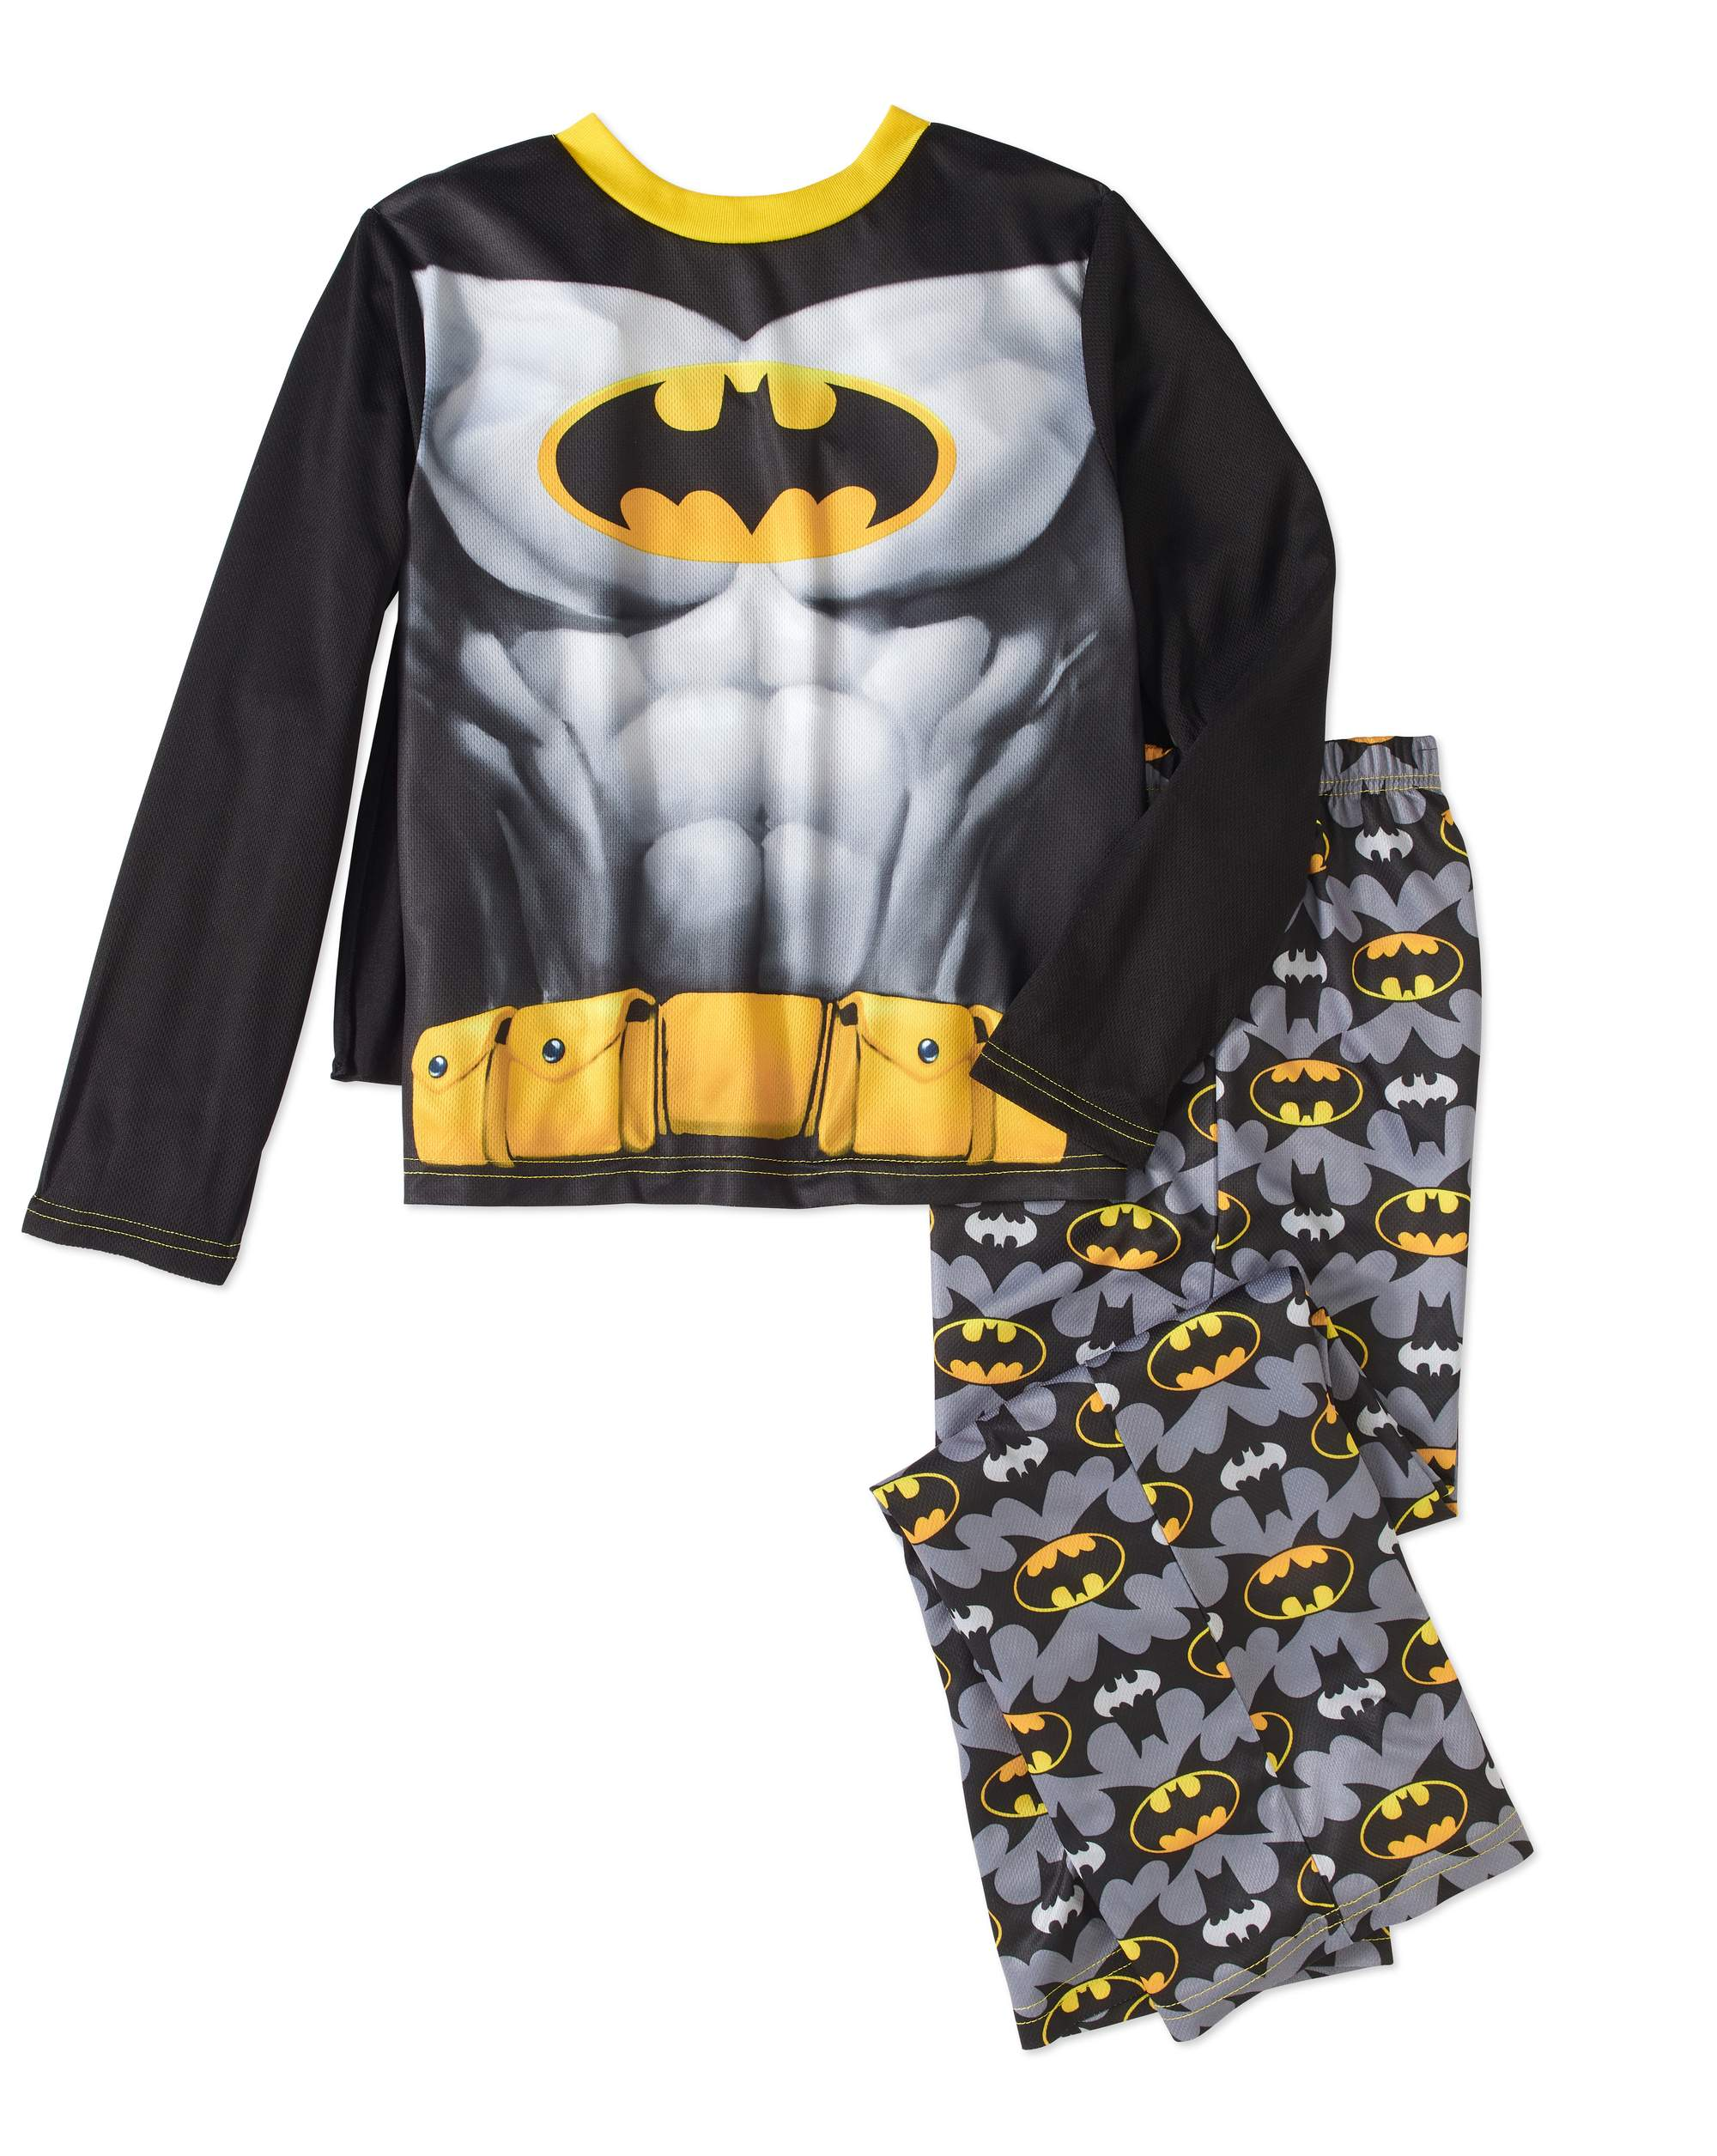 Batman Boys' 2-Piece Mesh Pajama Set With Cape by